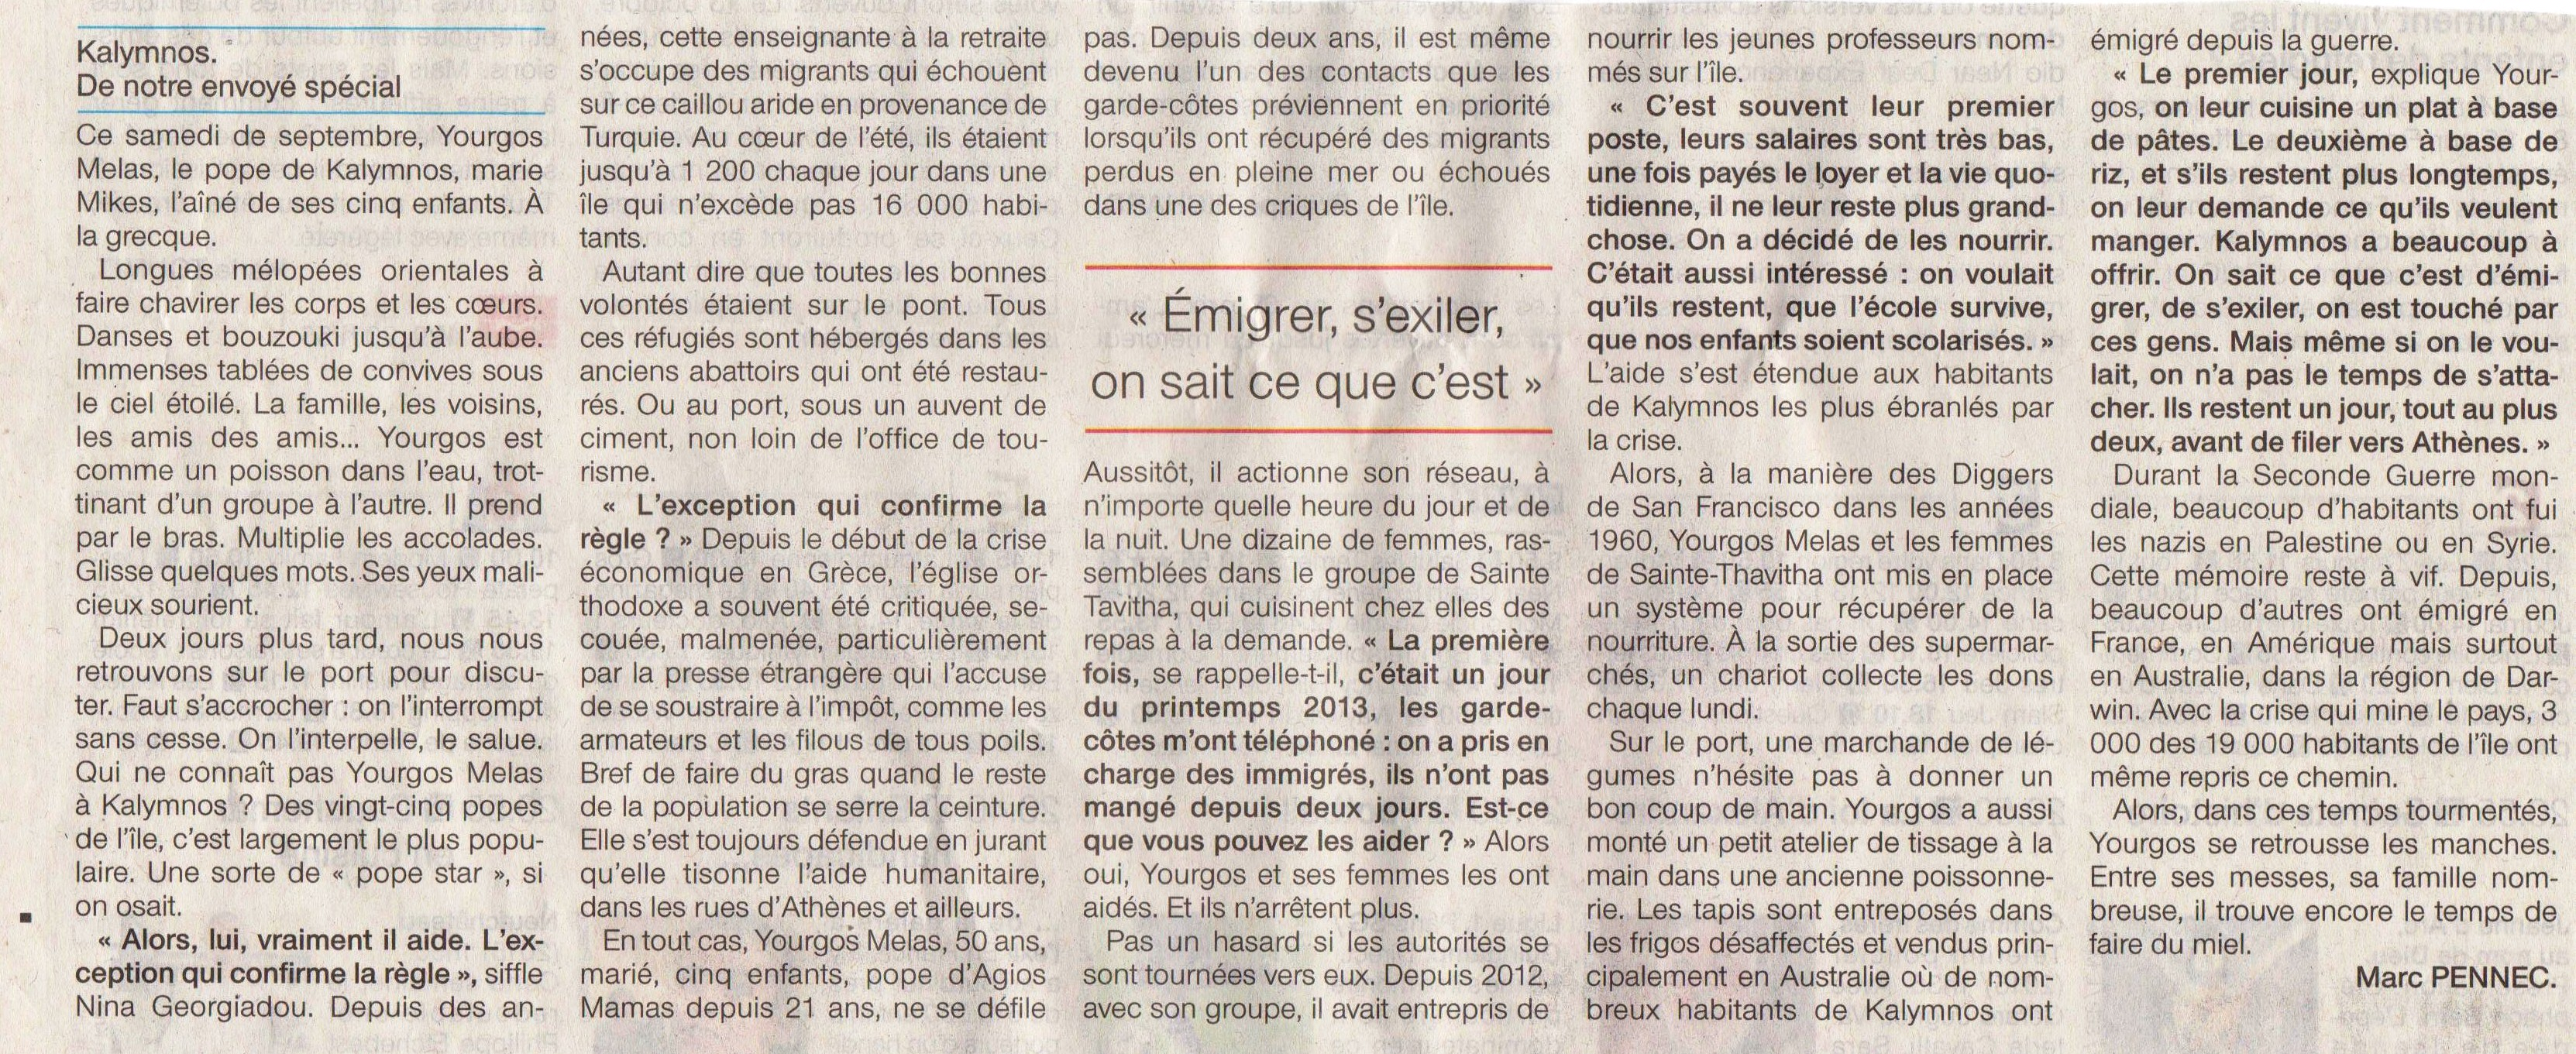 Kalymnos Article de Ouest France